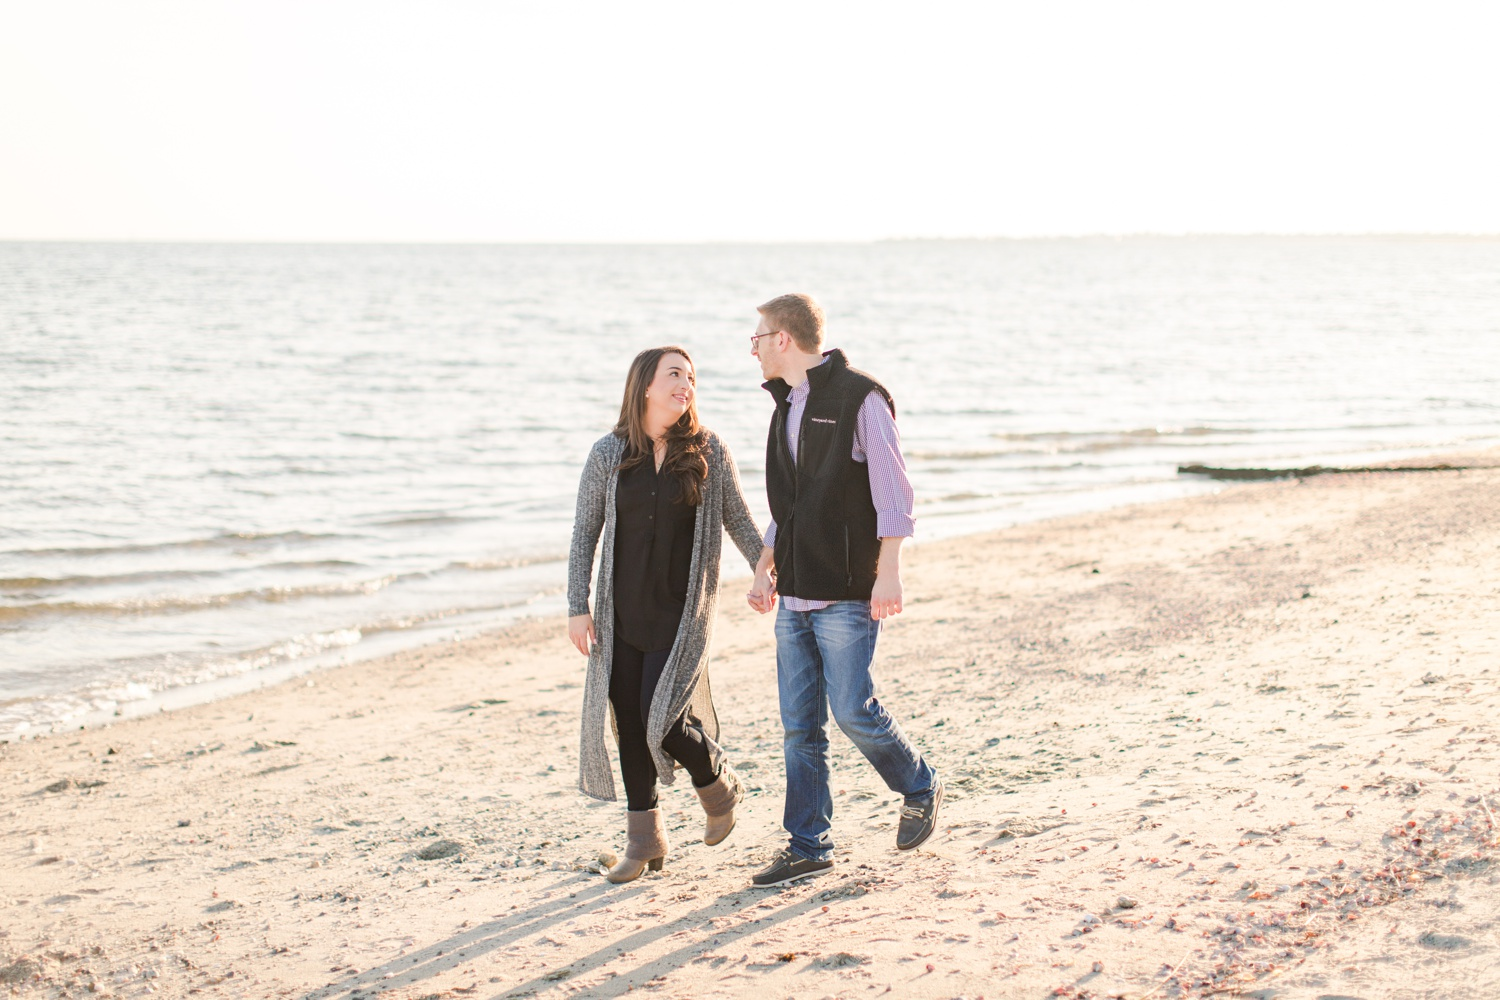 walnut-beach-fall-engagement-session-milford-connecticut-top-ct-nyc-destination-wedding-photographer-shaina-lee-photography-photo13.jpg